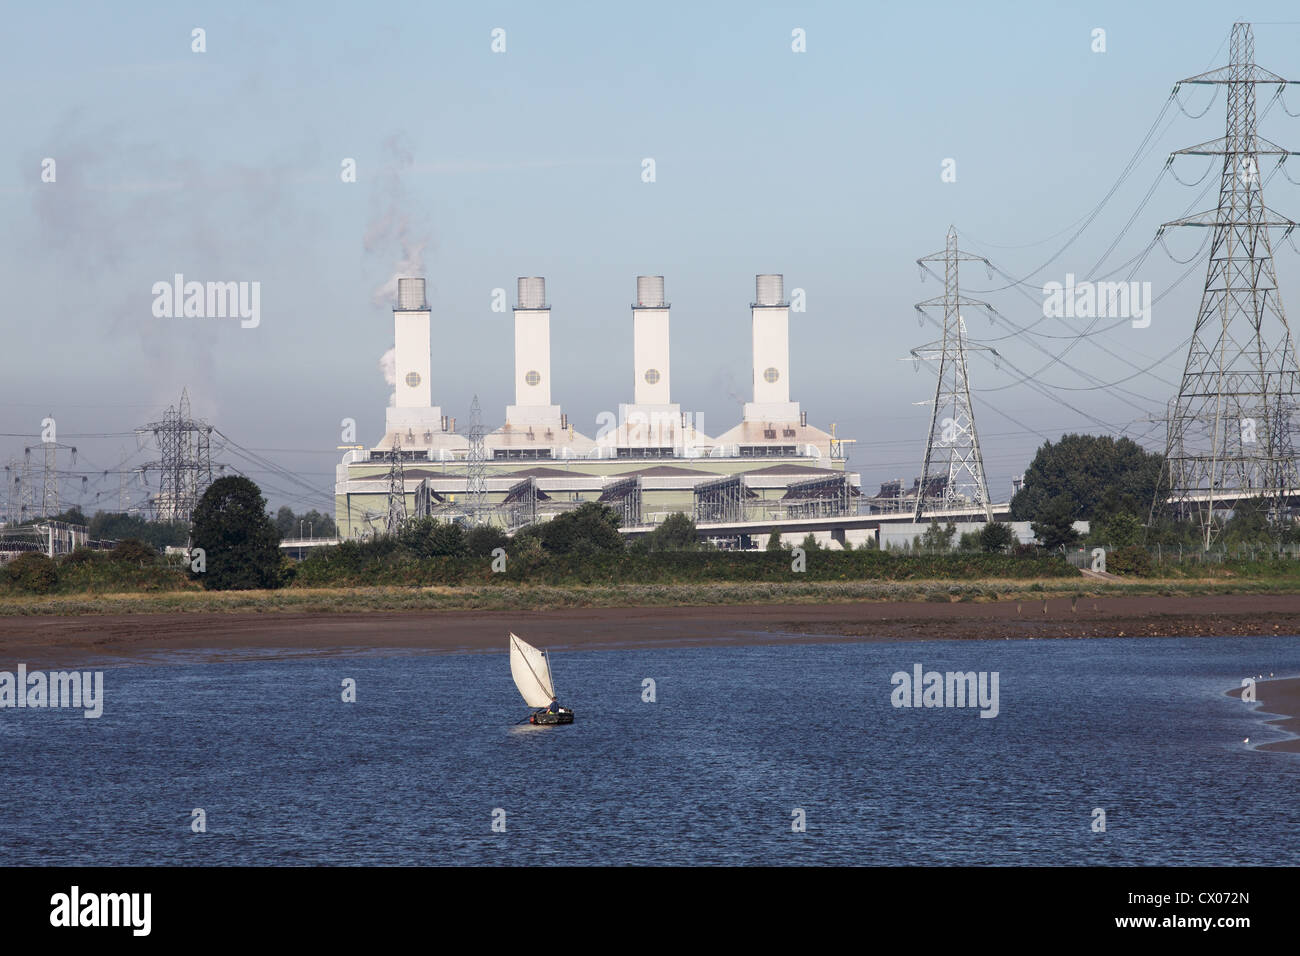 A fisherman sails an old wooden boat on the river Dee with Connah's Quay power station in the background, North - Stock Image